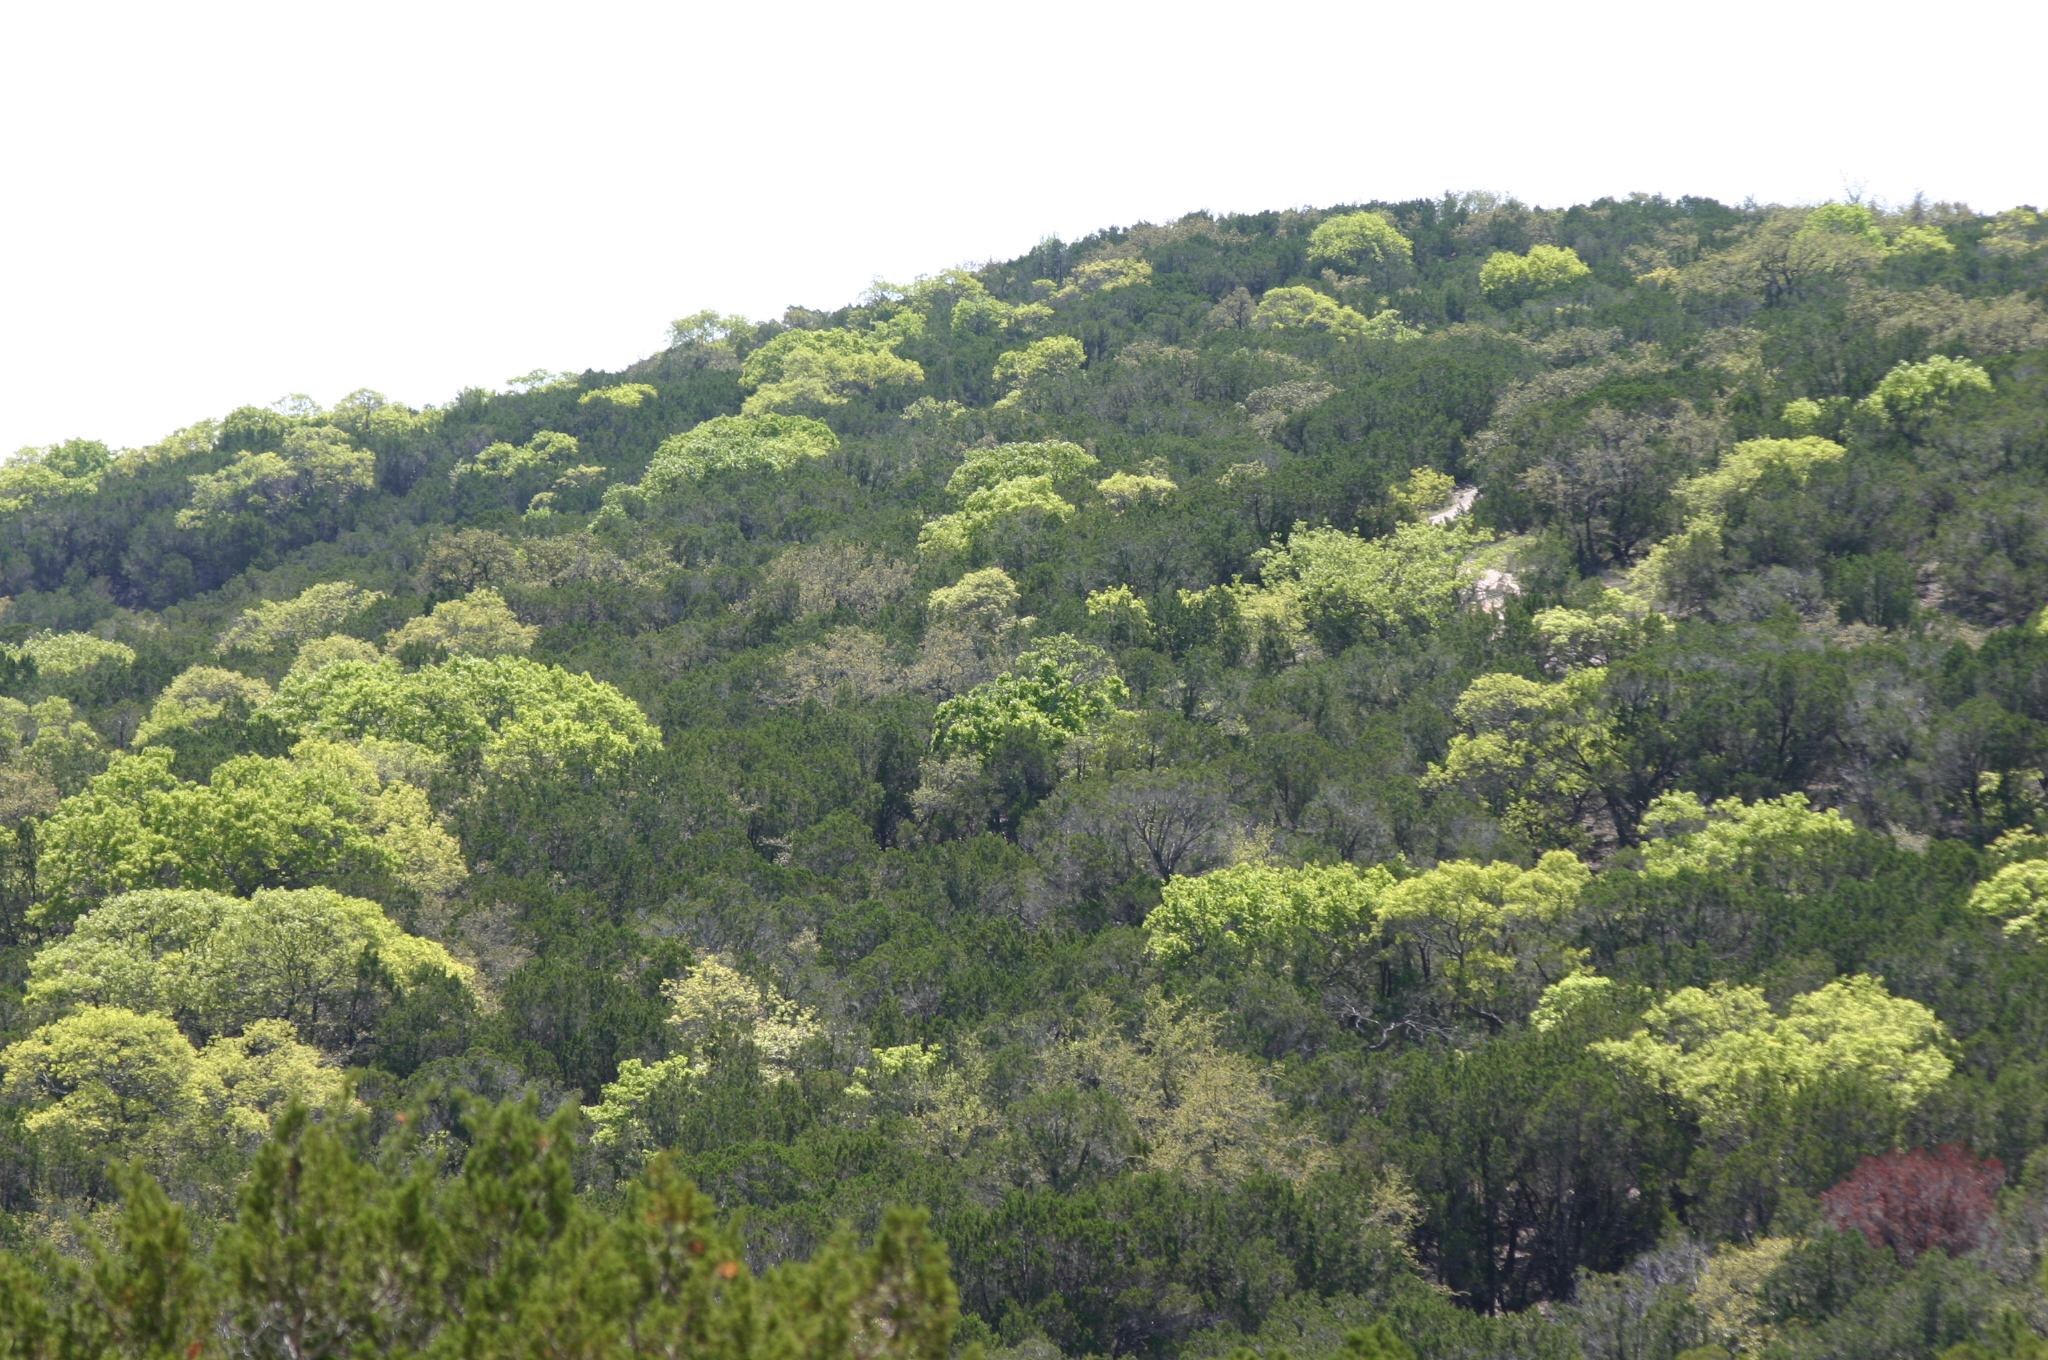 File:Spring Forest Leaves in Texas Hill Country.jpg